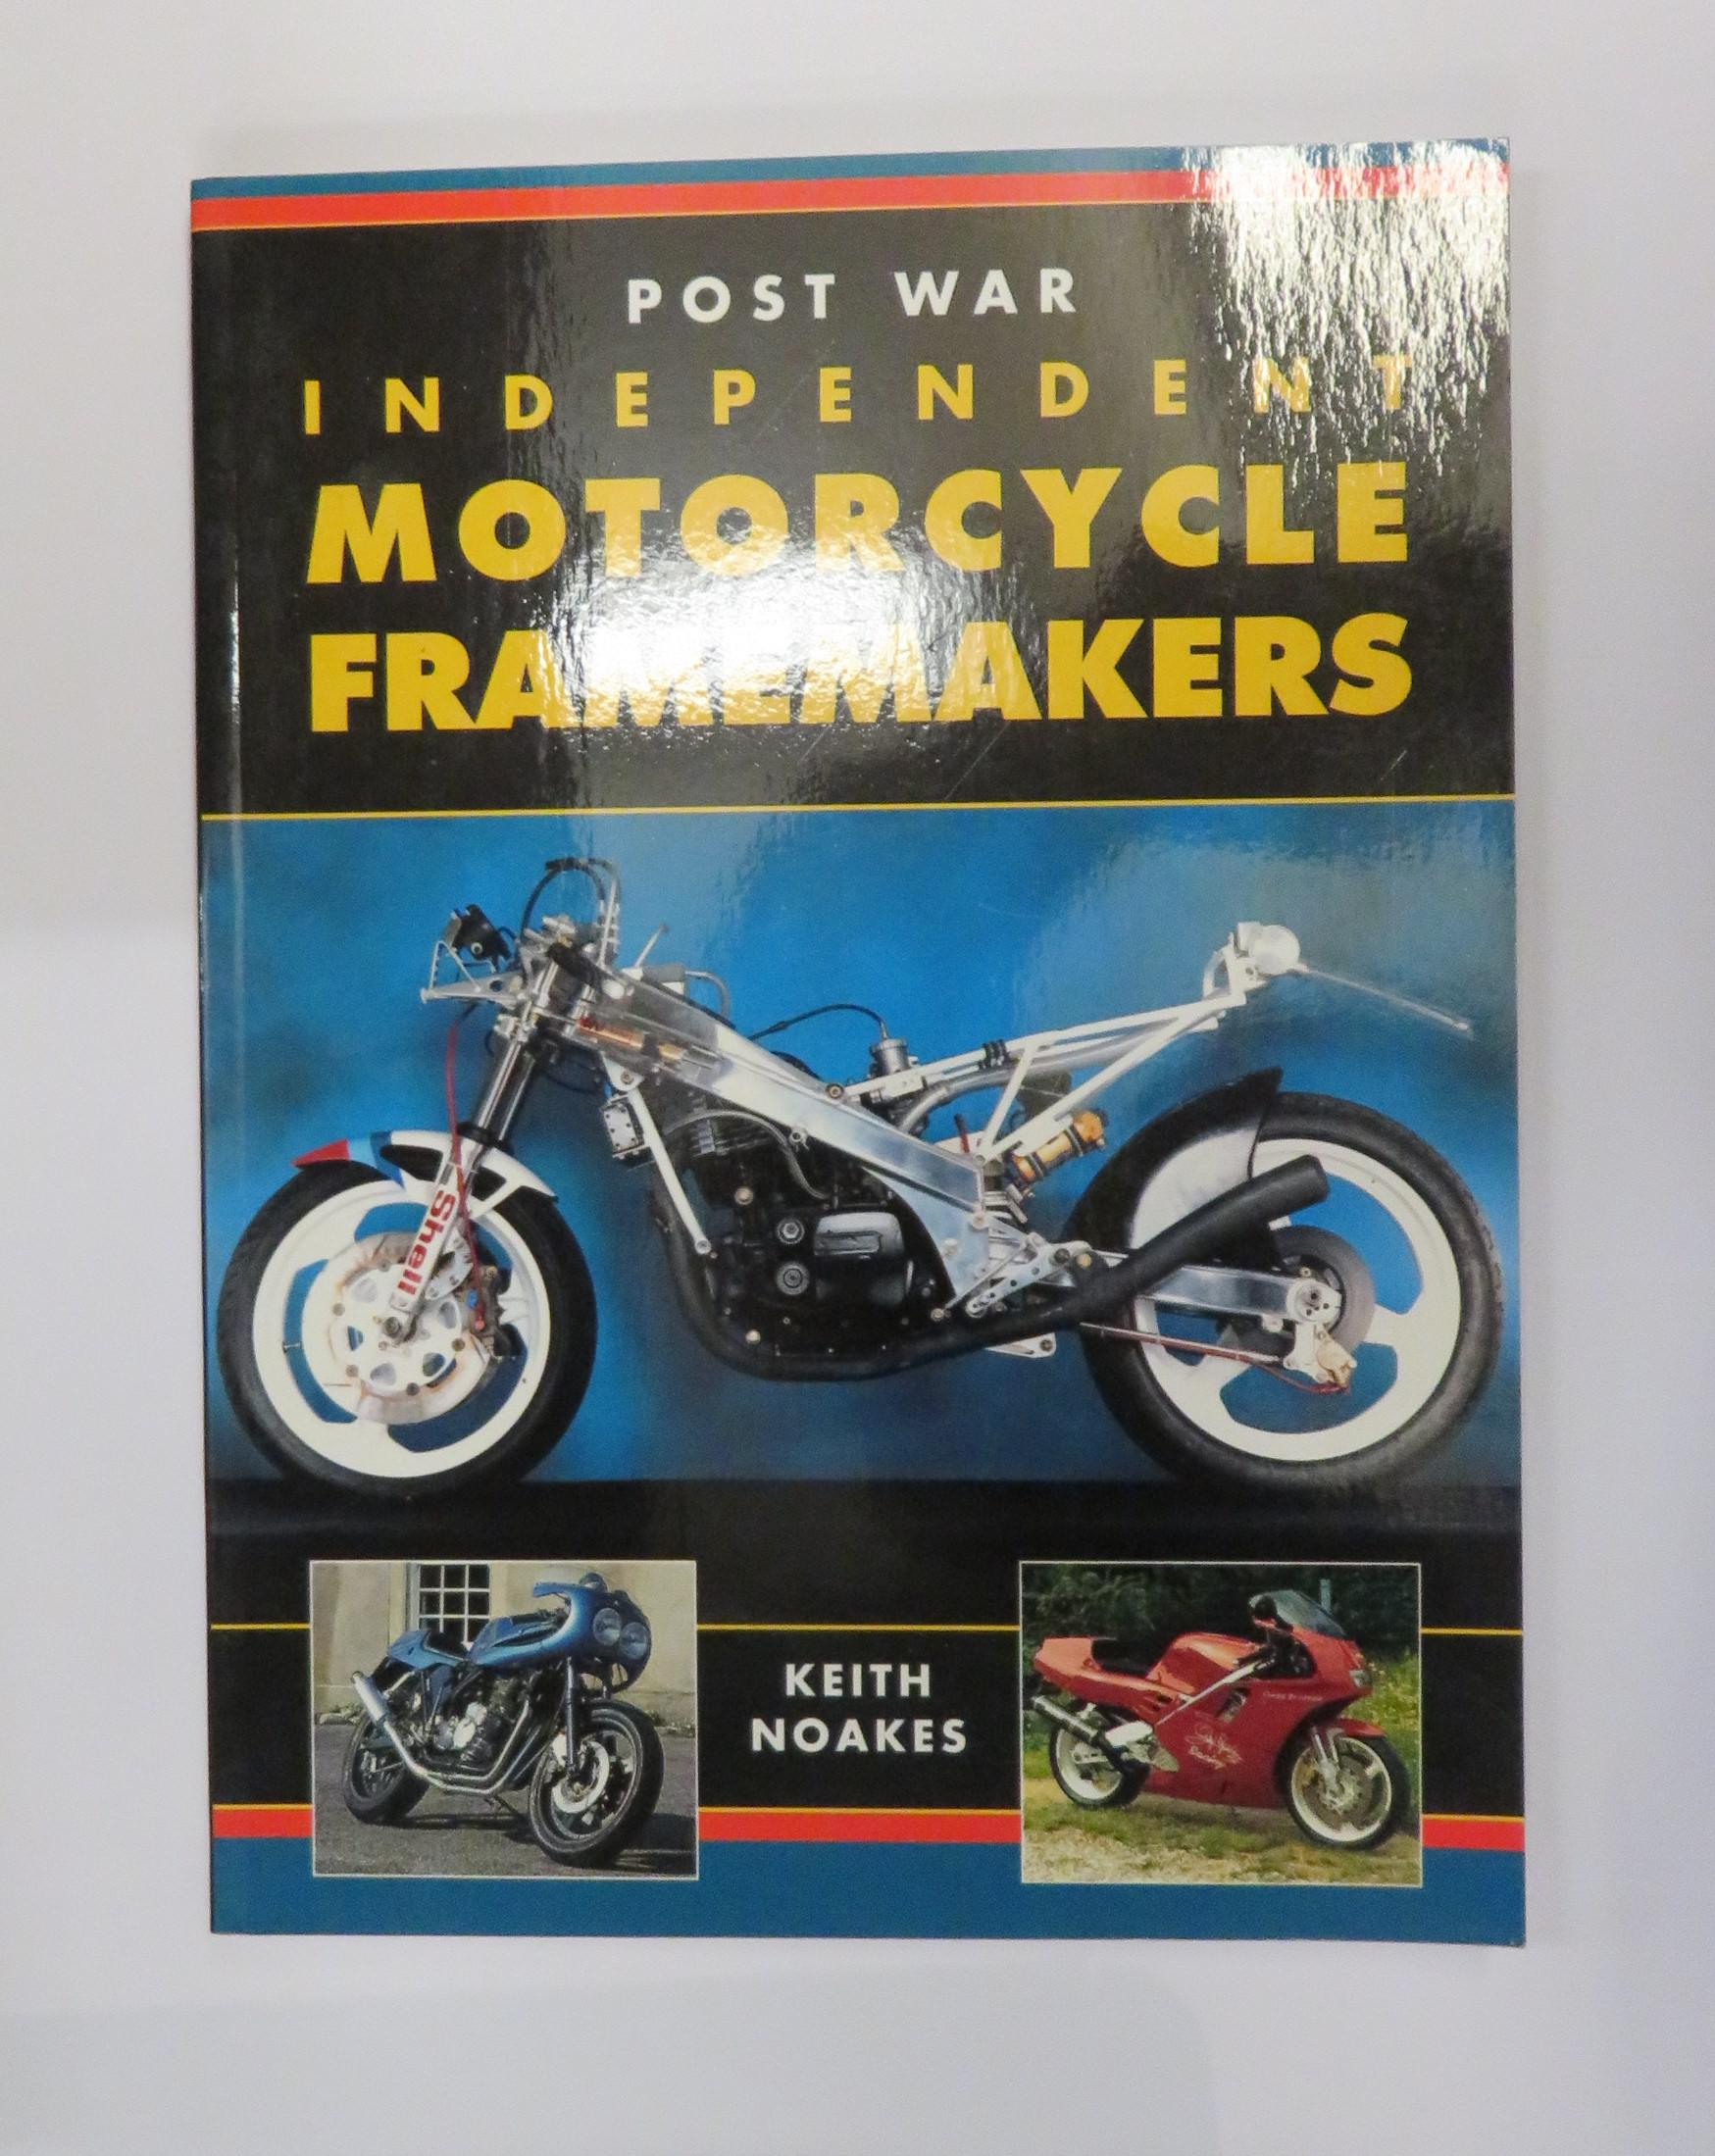 Post War Independent Motorcycles Framemakers